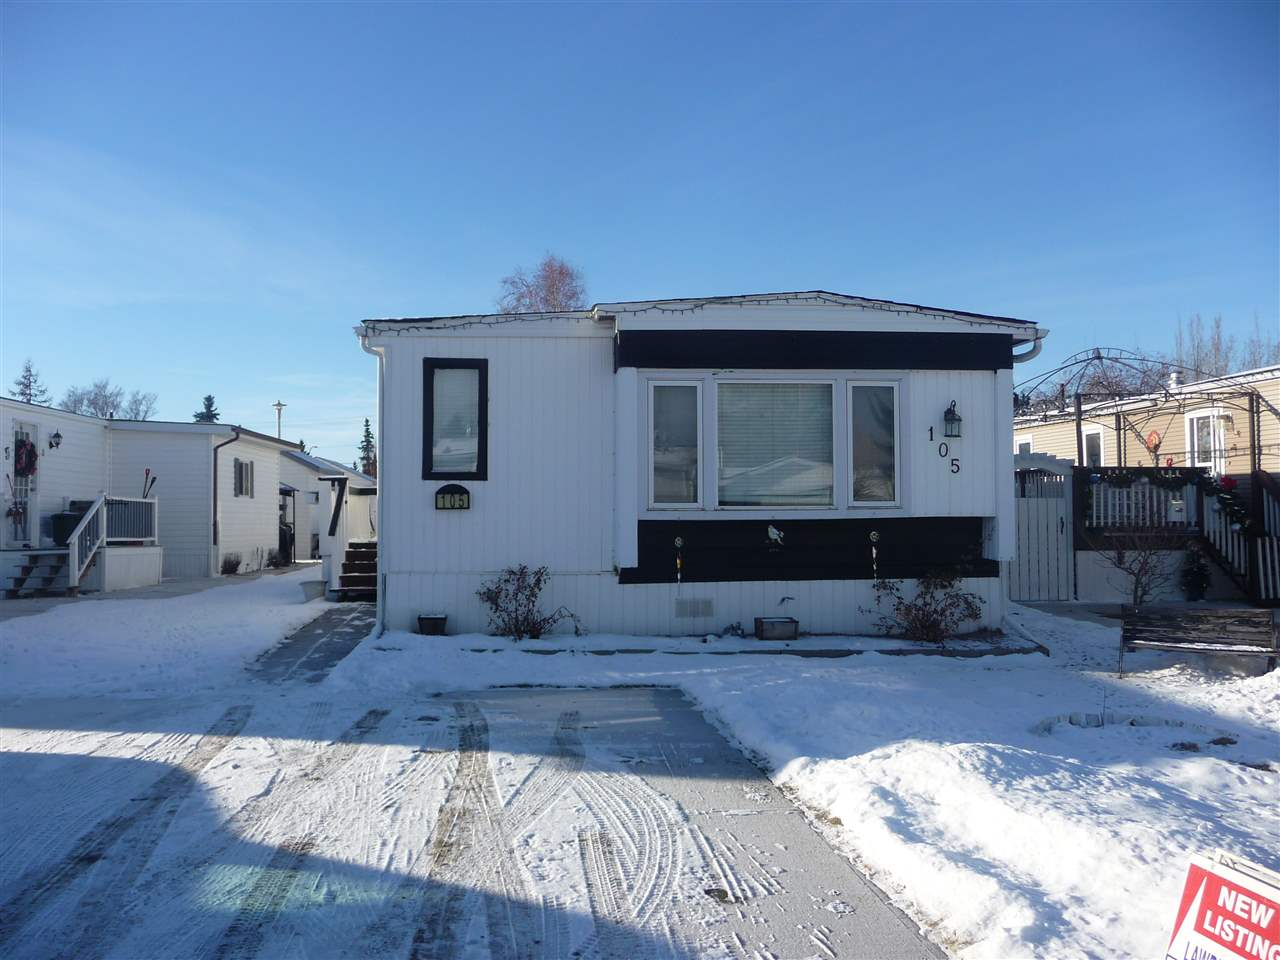 GREAT STARTER HOME WITH 3 BEDROOMS,HUGE LIVING ROOM,GOOD SIZE KITCHEN & DINING AREA,GREAT ROOMY ENTRANCE TO MOBILE,VERY LARGE MASTER BEDROOM.ALSO 2 VERY LARGE STORAGE SHEDS ,FENCED YARD,SHINGLE REPLACED APPROX 3 YEARS AGO,FURNACE 2006.THIS VERY SPACIOUS 1400 SQ FT MOBILE LOCATED IN ONE OF THE BEST MOBILE PARKS IN EDMONTON WITH CHEAPEST LOT RENTAL KNOWN OF IN EDMONTON AND AREA $325.00 PER MONTH INCLUDING WATER,SEWER & GARBAGE PICK UP.CLOSE TO A LOT OF AMENITIES,BUS ETC.